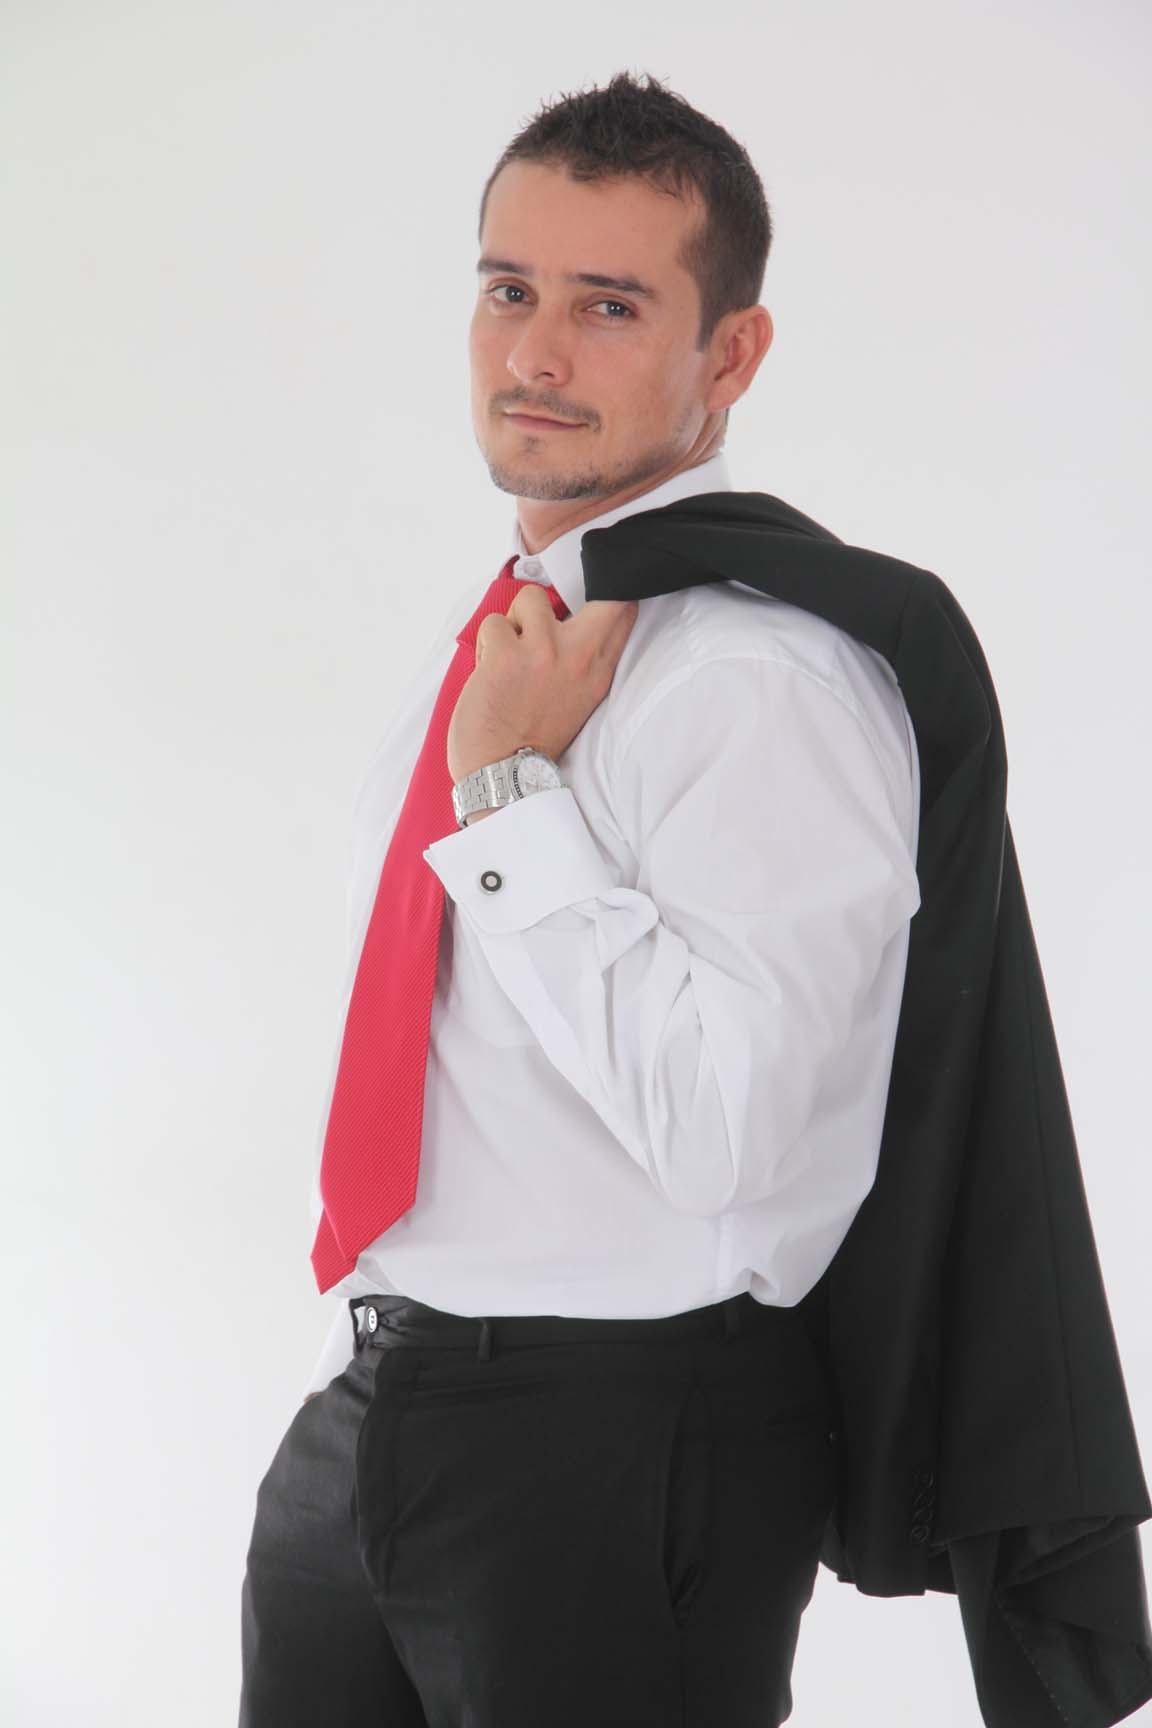 linderman_herrera_actor